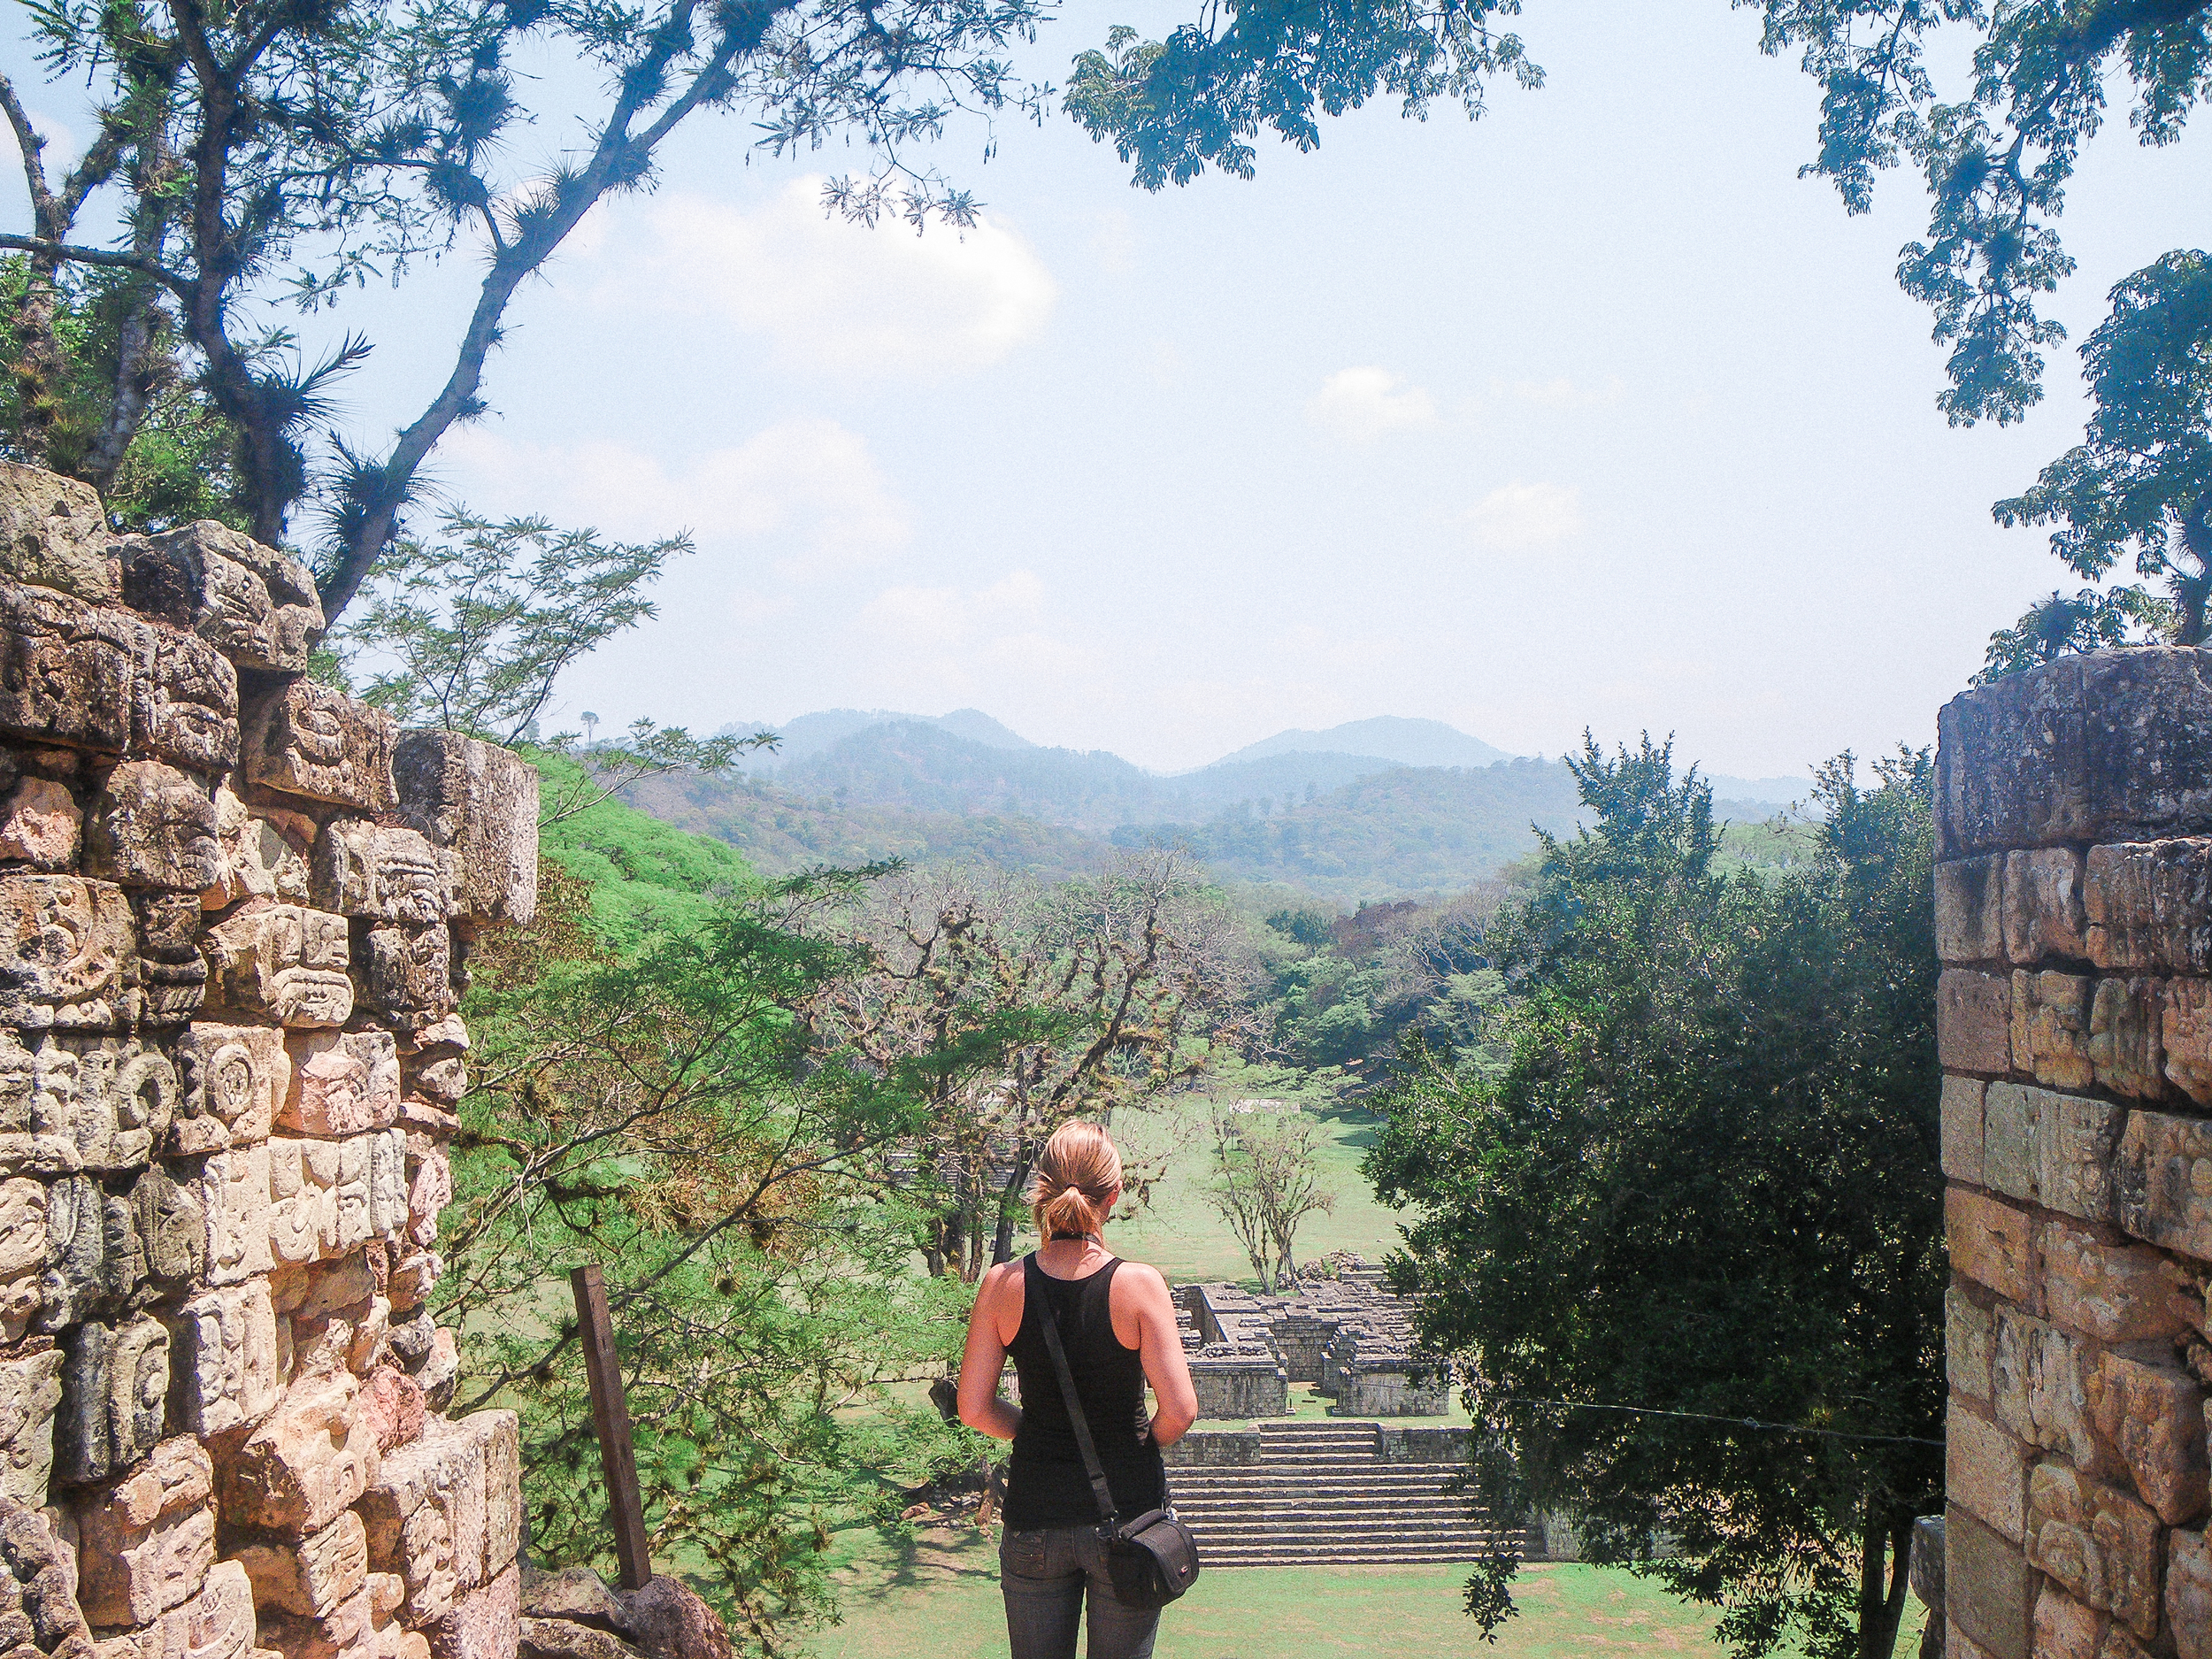 This is from that very backpacking trip -the day we visited Cop á n in Honduras. Stunningly beautiful and a little haunting to stand within the ruins. But imagine waking up each day to that view....